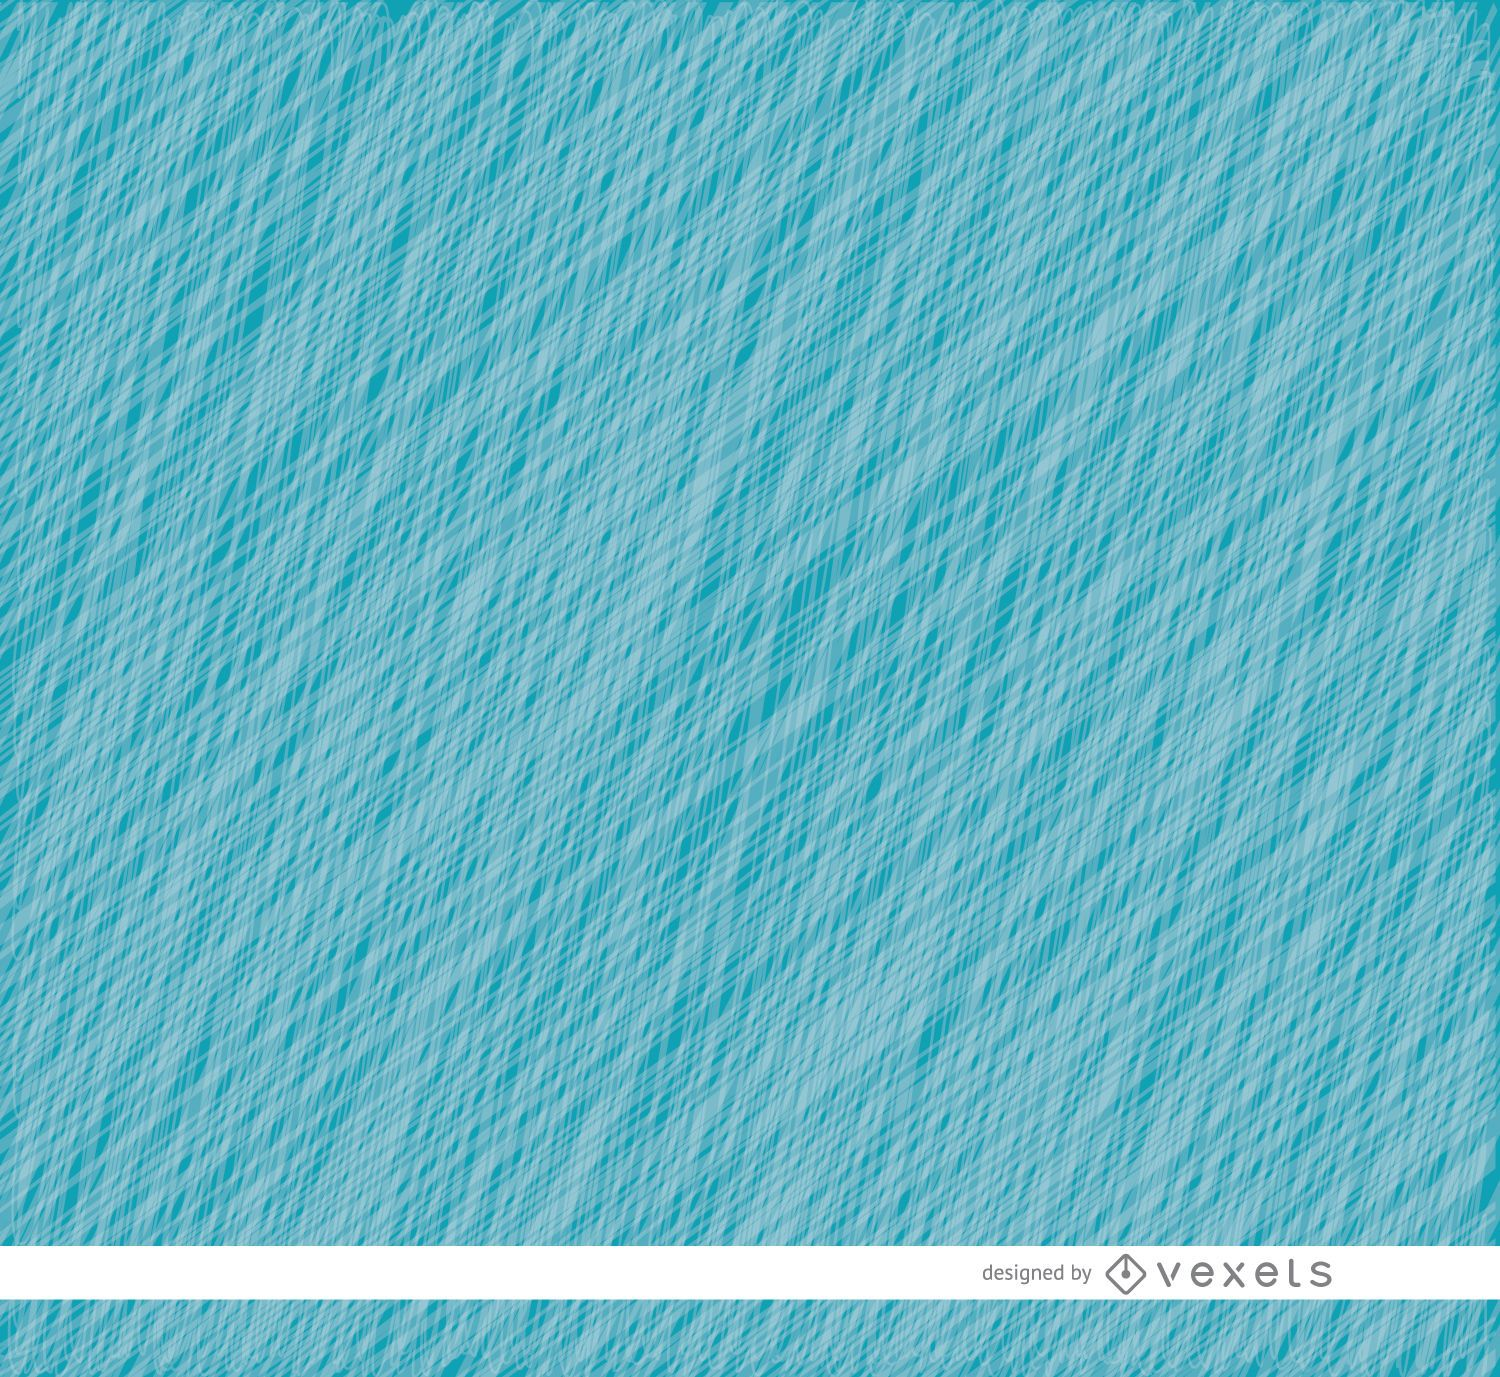 Fabric blue texture background